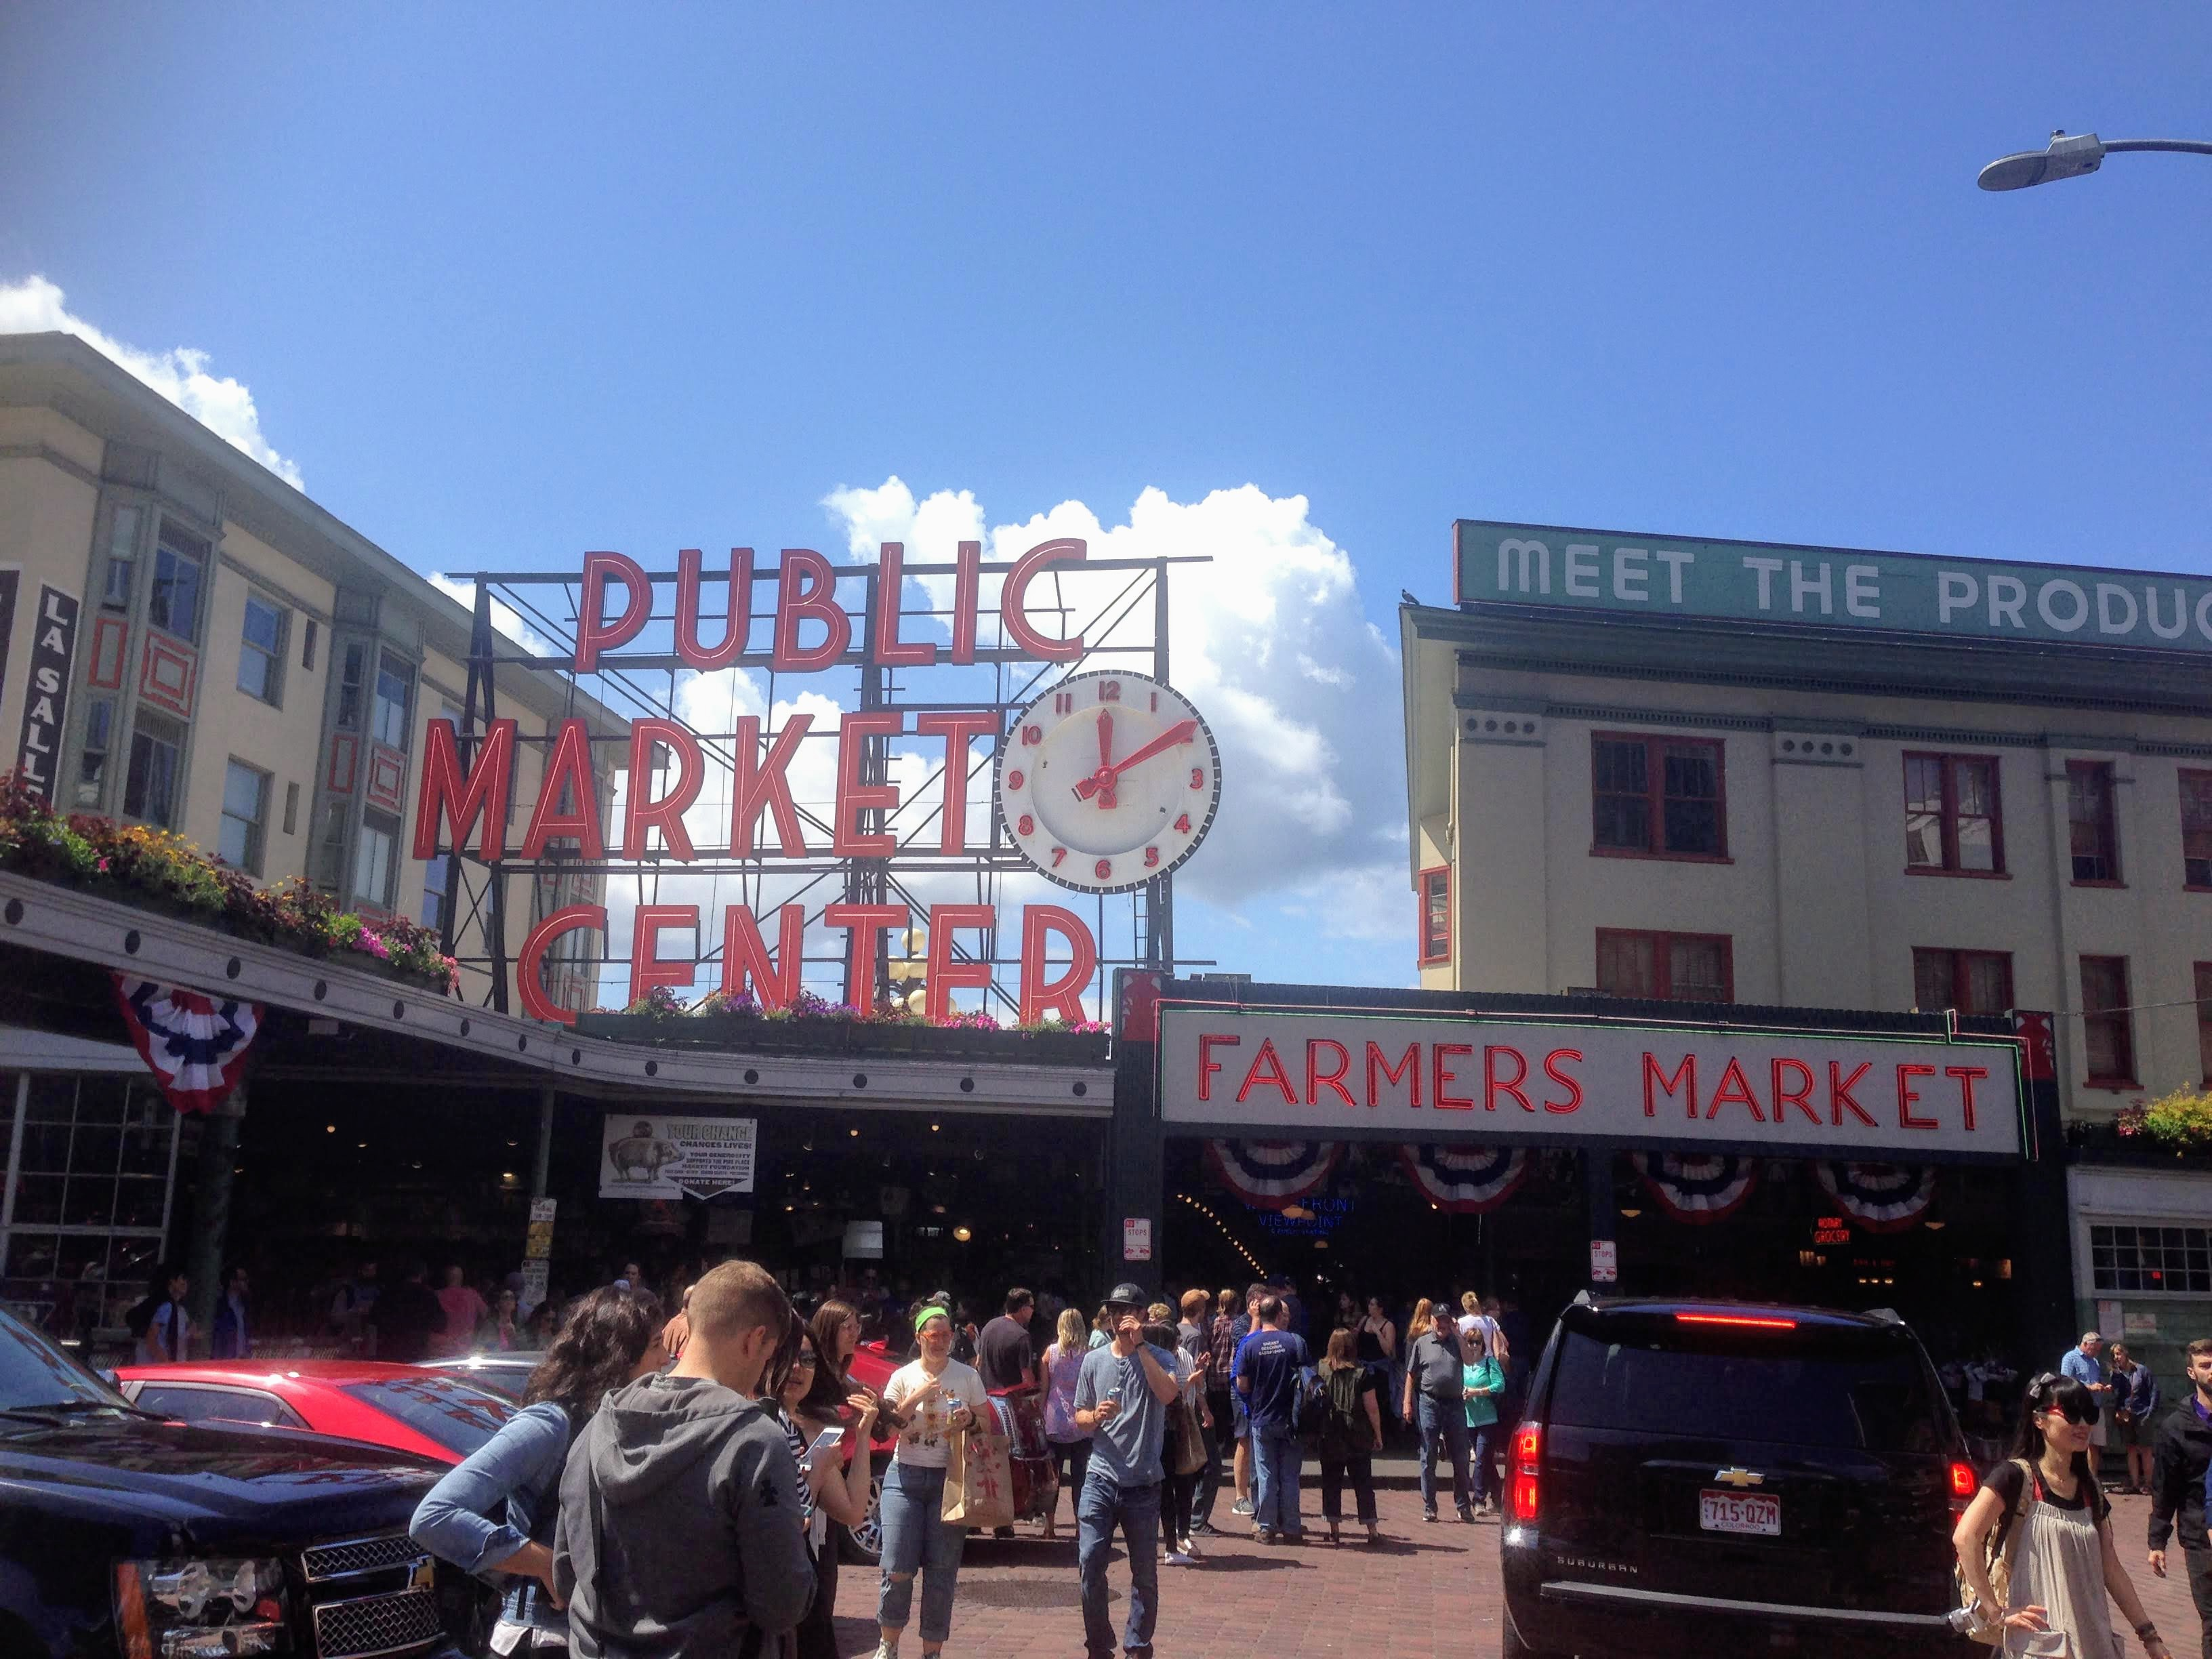 Seattle USA Washington travel tips travel advice city guide travel guide things to do activities Pike Place Market